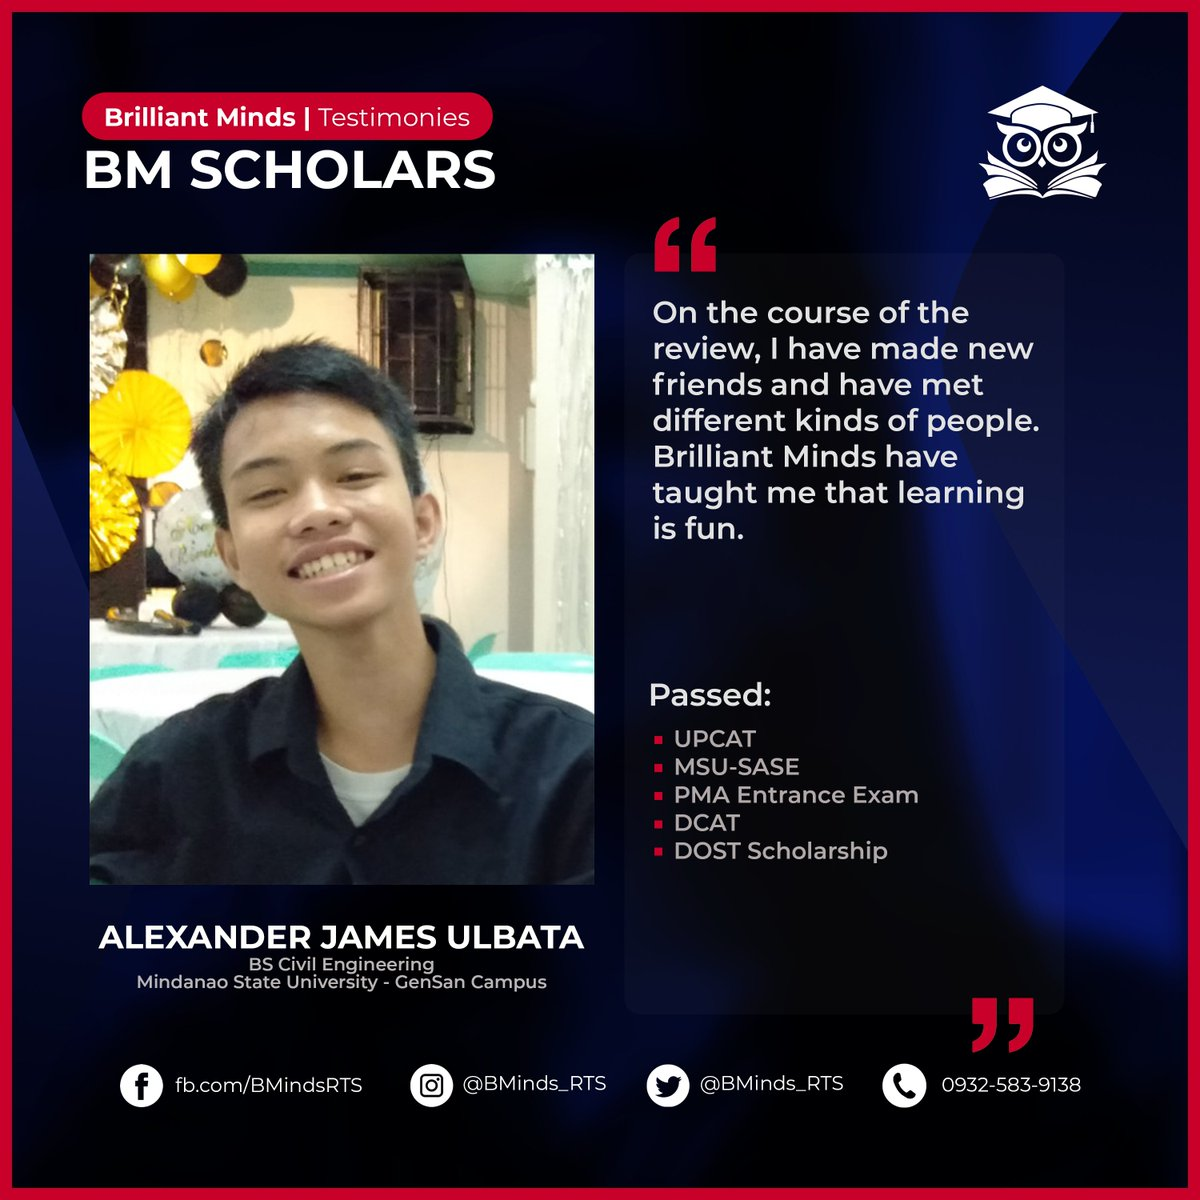 Meet Alexander, a former BM Scholar! Read his Brilliant Minds experience through this link: https://t.co/nDBwtr5fcc  [1/2] https://t.co/bfRpsapVo9